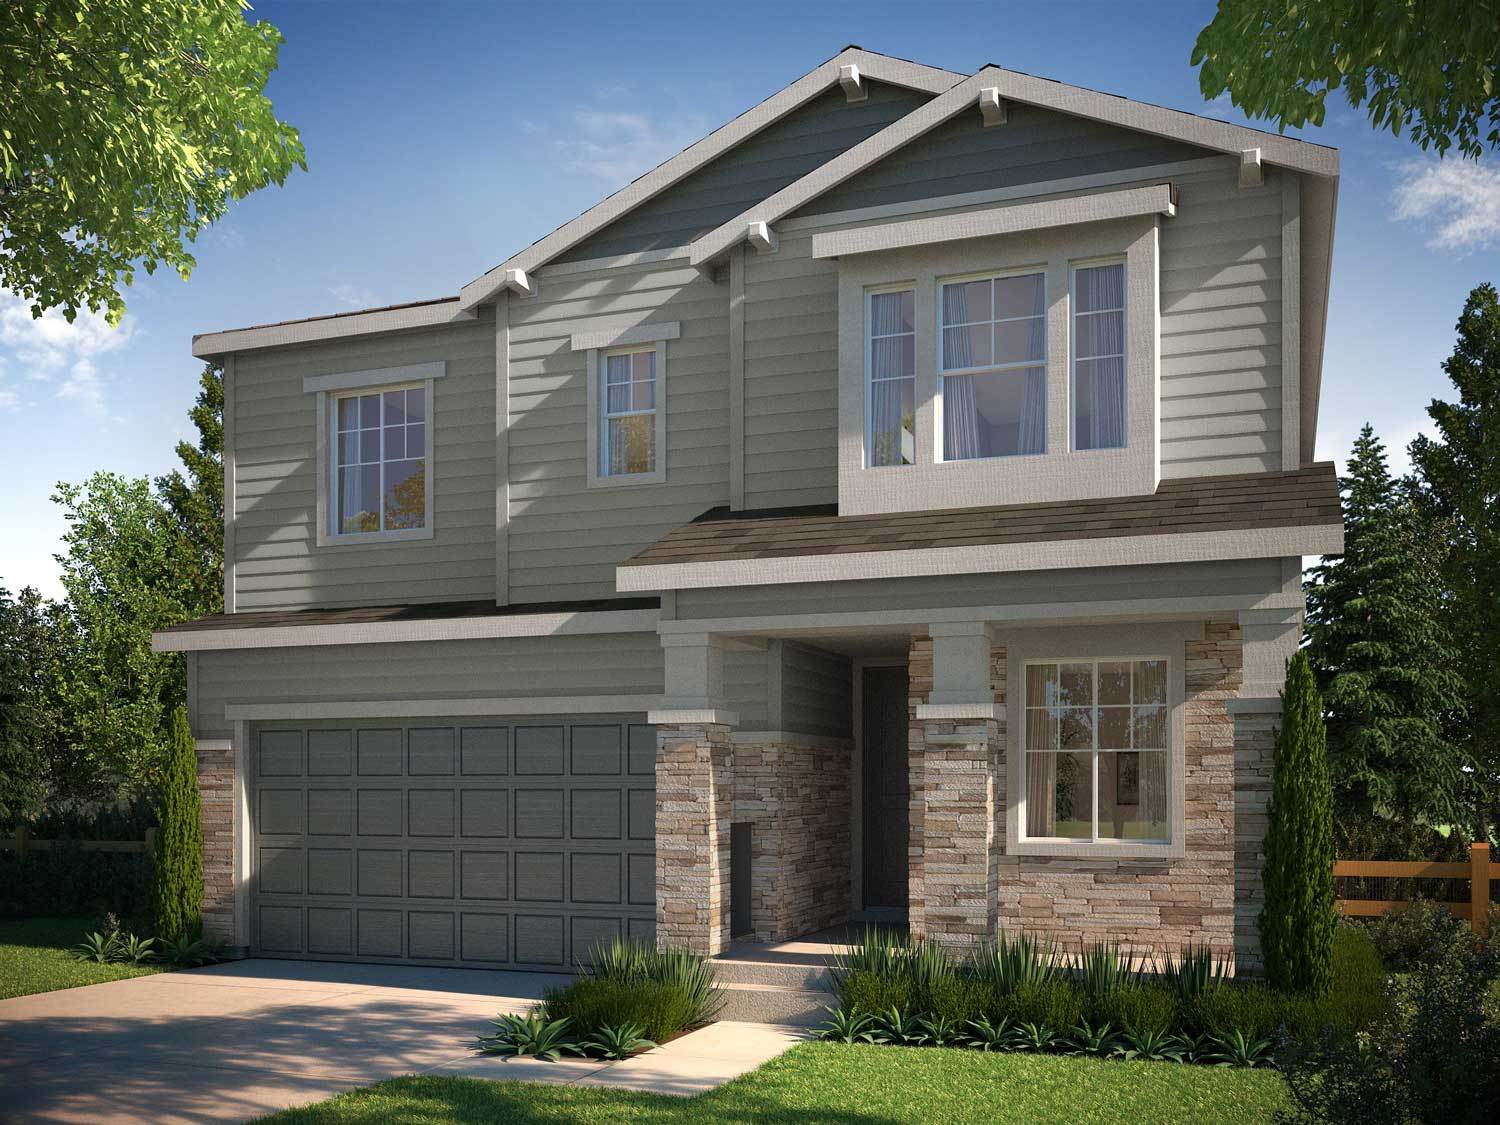 Tri pointe homes prelude collection in ravenwood village for Ravenwood homes